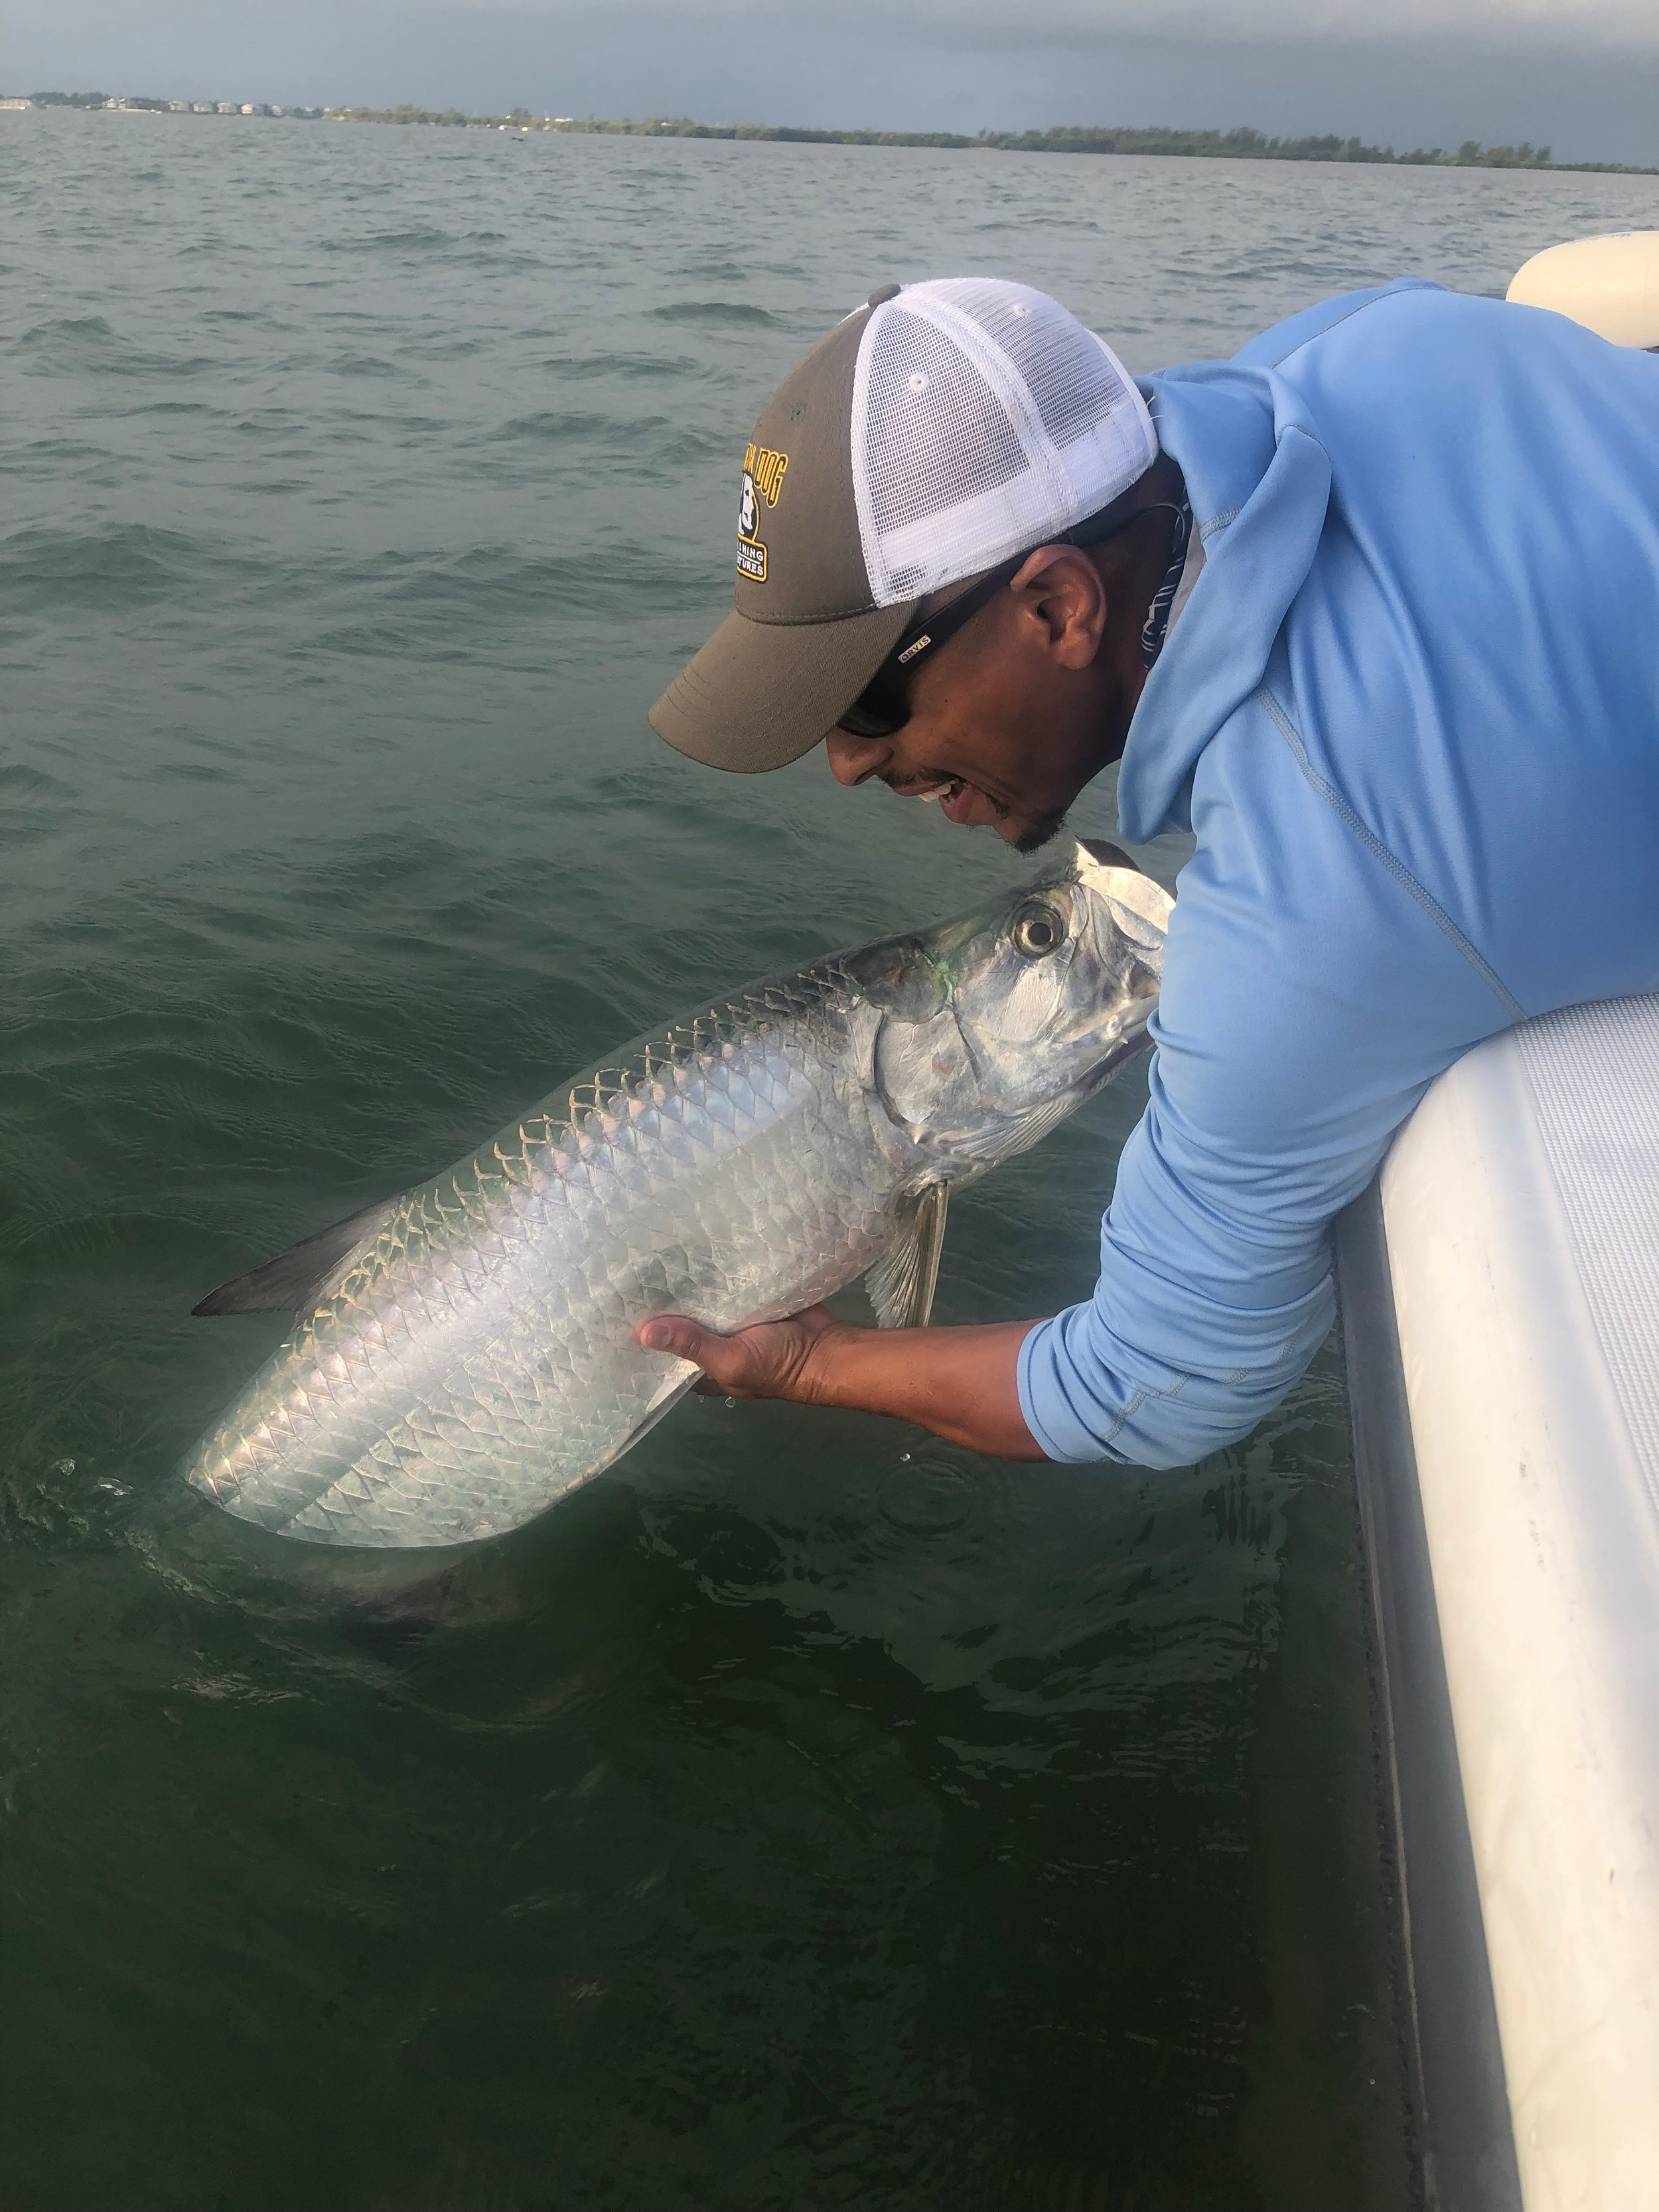 Tarpon smiles for Buff!